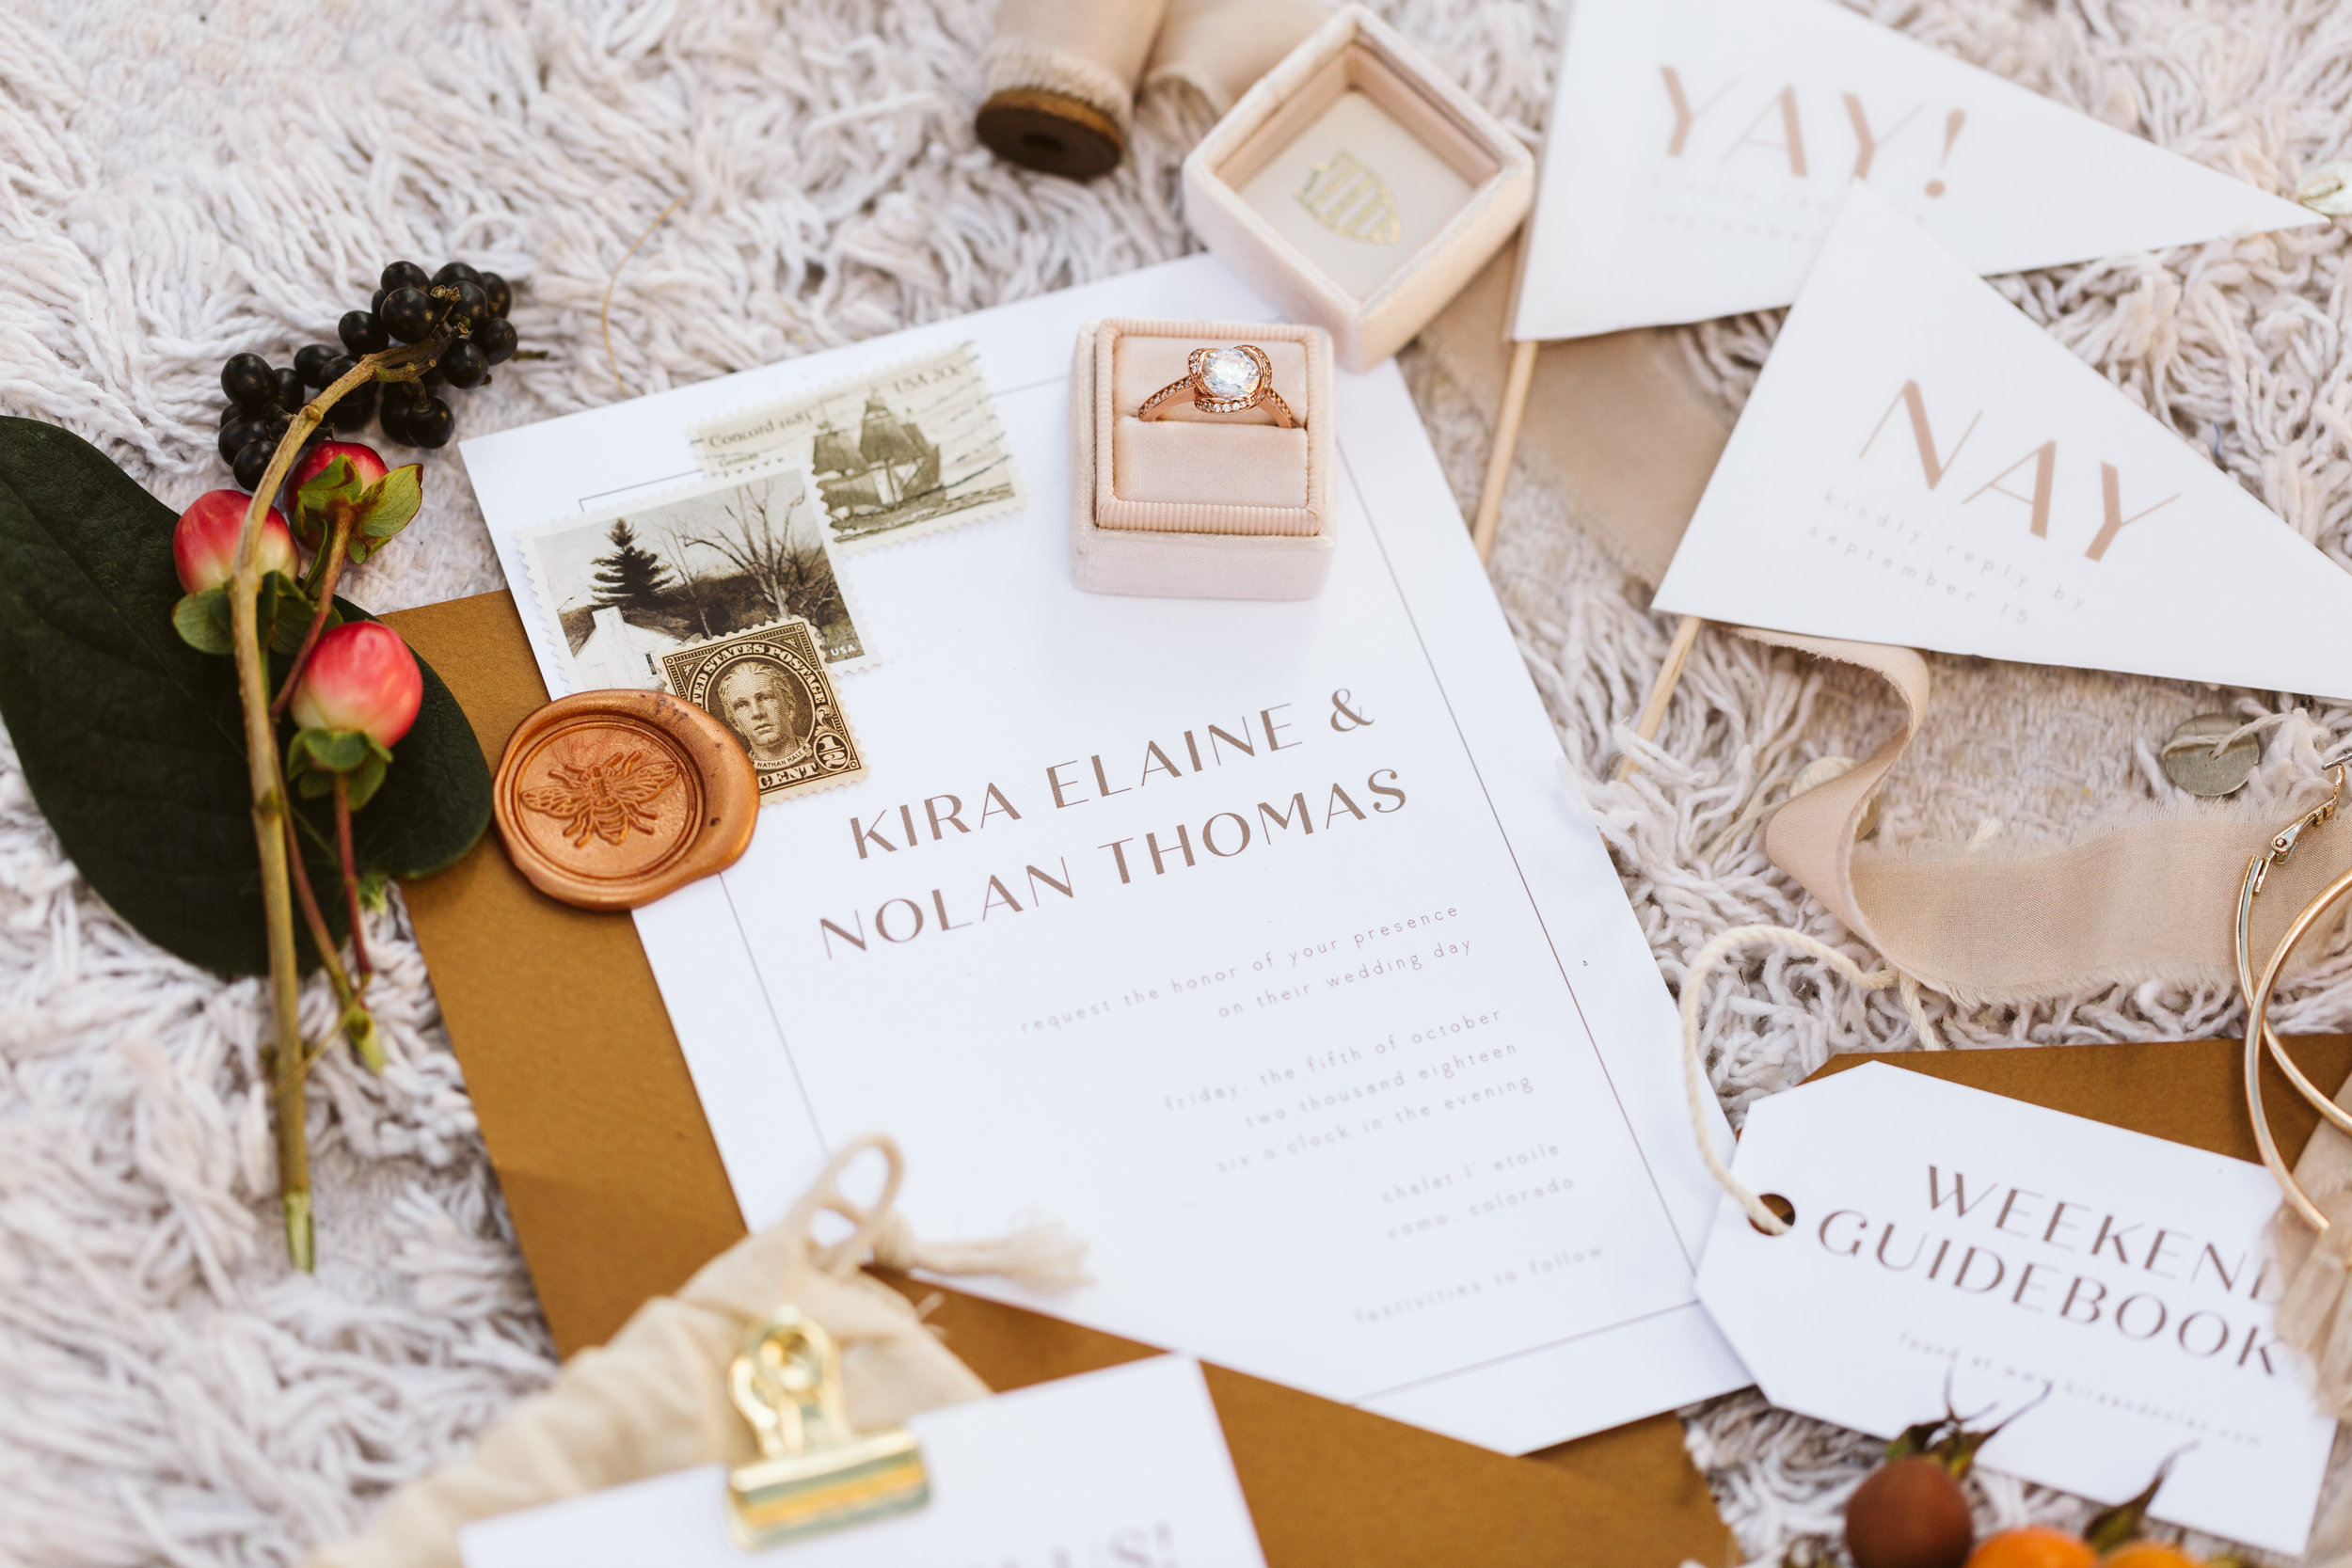 timeless, heirloom quality wedding stationery - intimate yet relaxed. clean and edited.